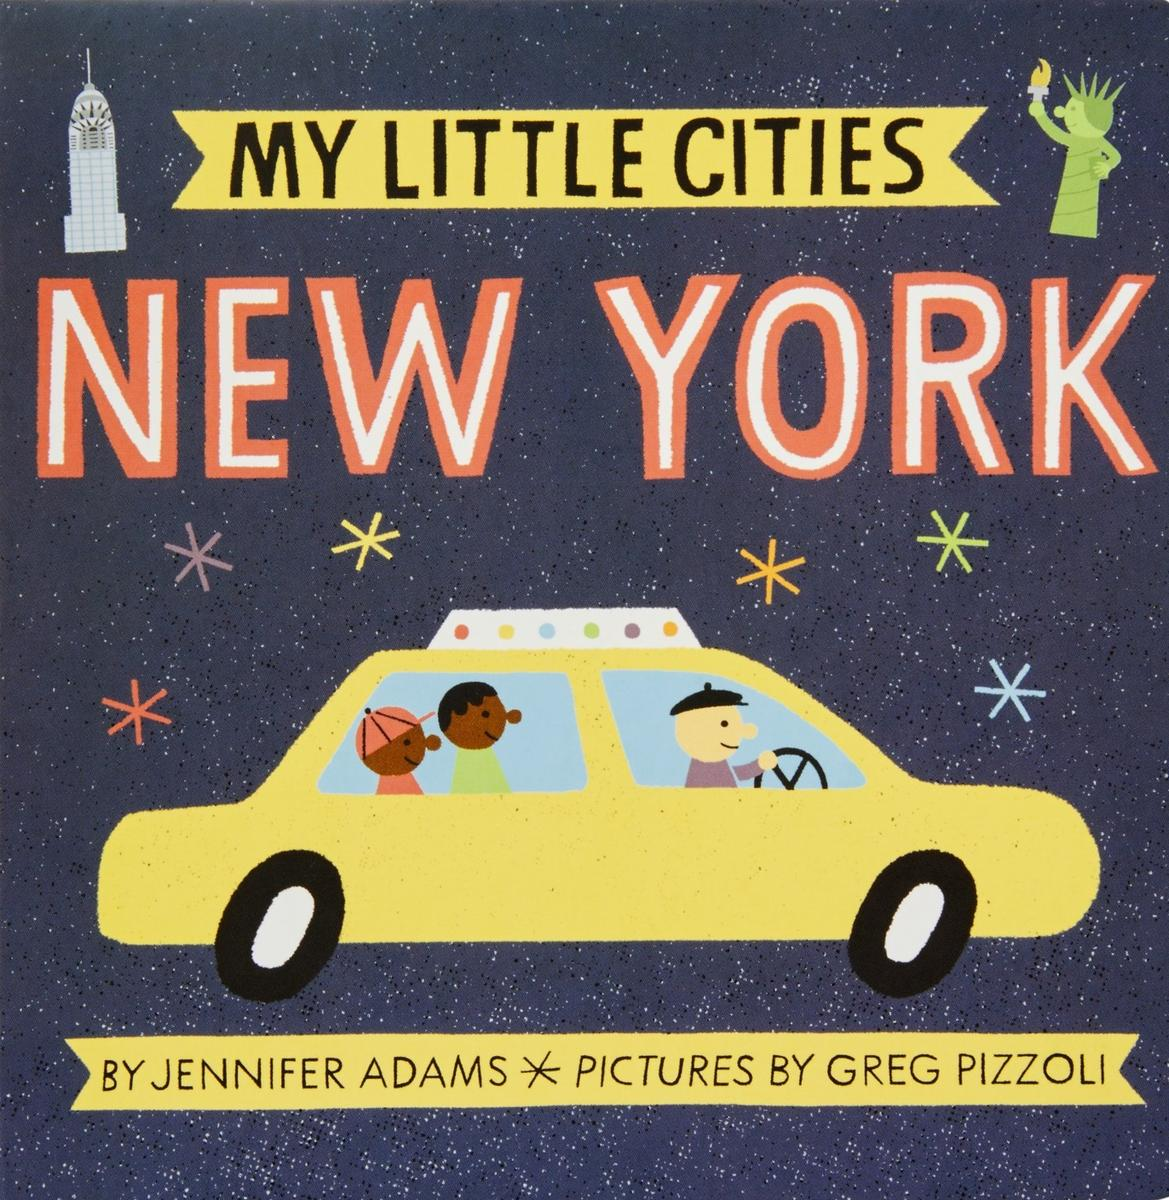 My Little Cities New York by Jennifer Adams